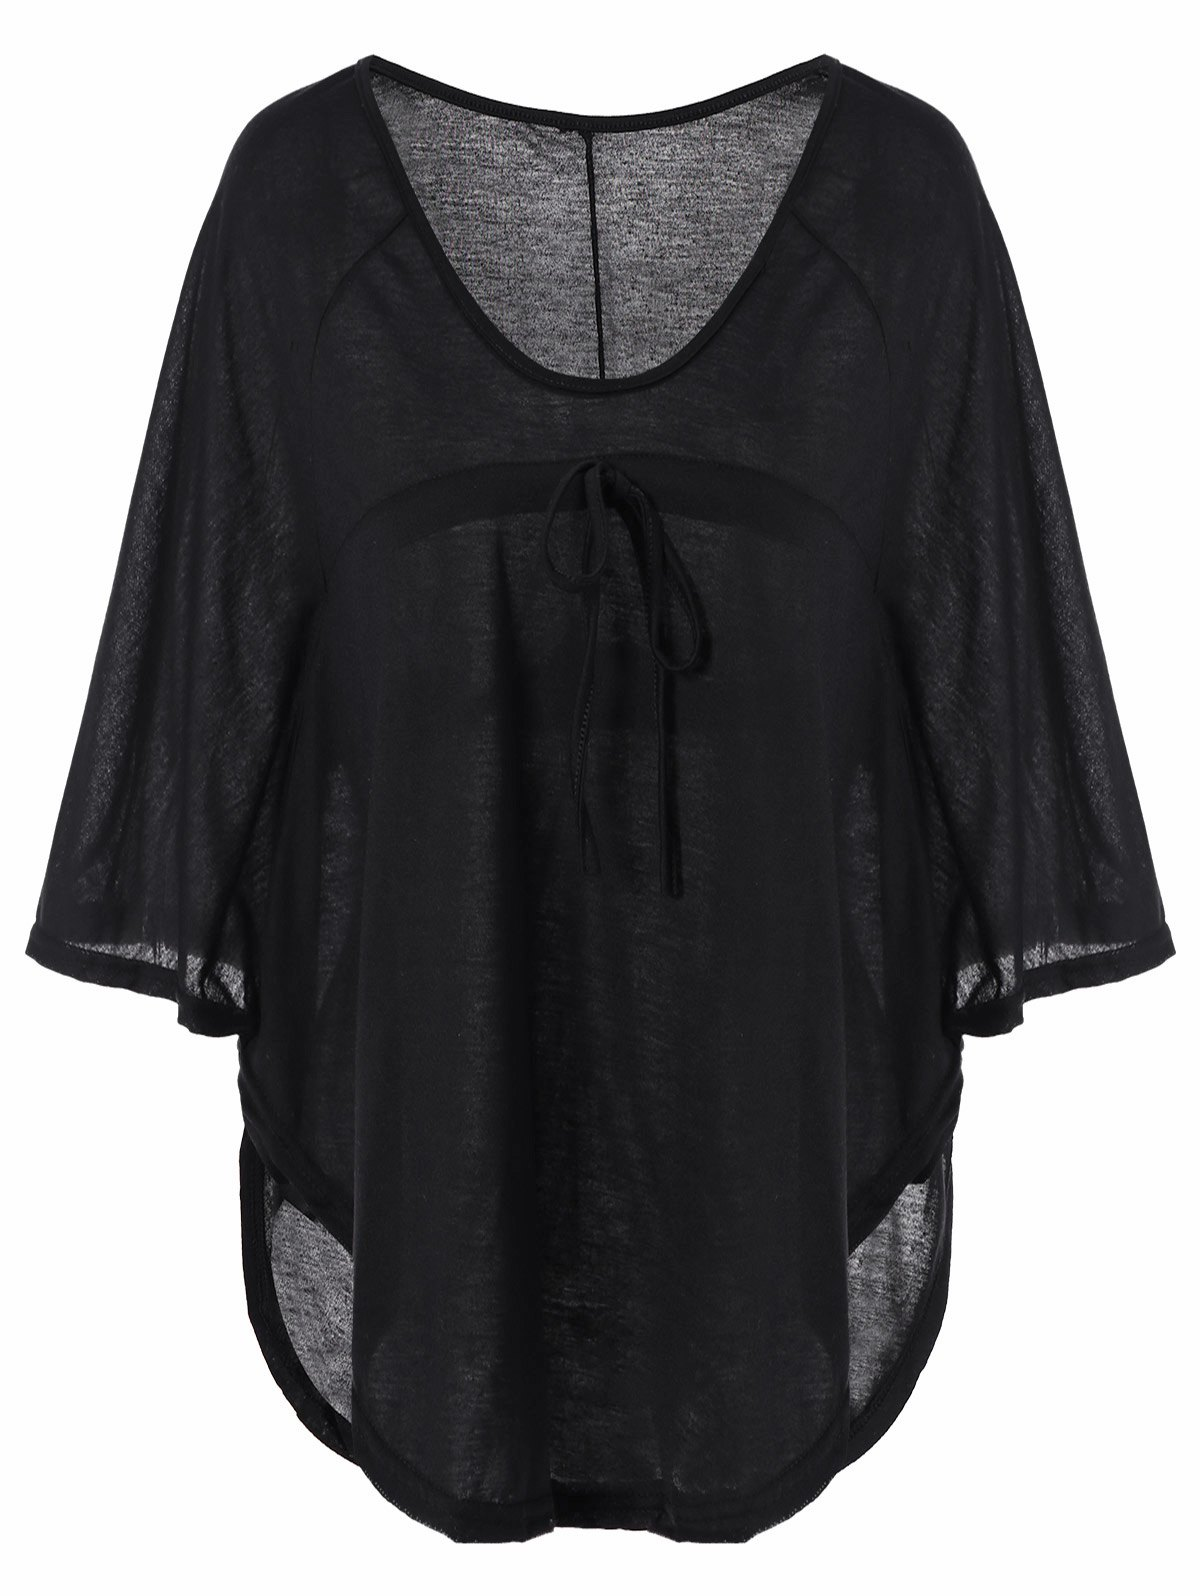 Plunging Neckline Plain Loose-Fitting Half Sleeve T-ShirtWOMEN<br><br>Size: 2XL; Color: BLACK; Material: Cotton Blends; Shirt Length: Regular; Sleeve Length: Half; Collar: Plunging Neck; Style: Fashion; Pattern Type: Solid; Weight: 0.190kg; Package Contents: 1 x T-Shirt;